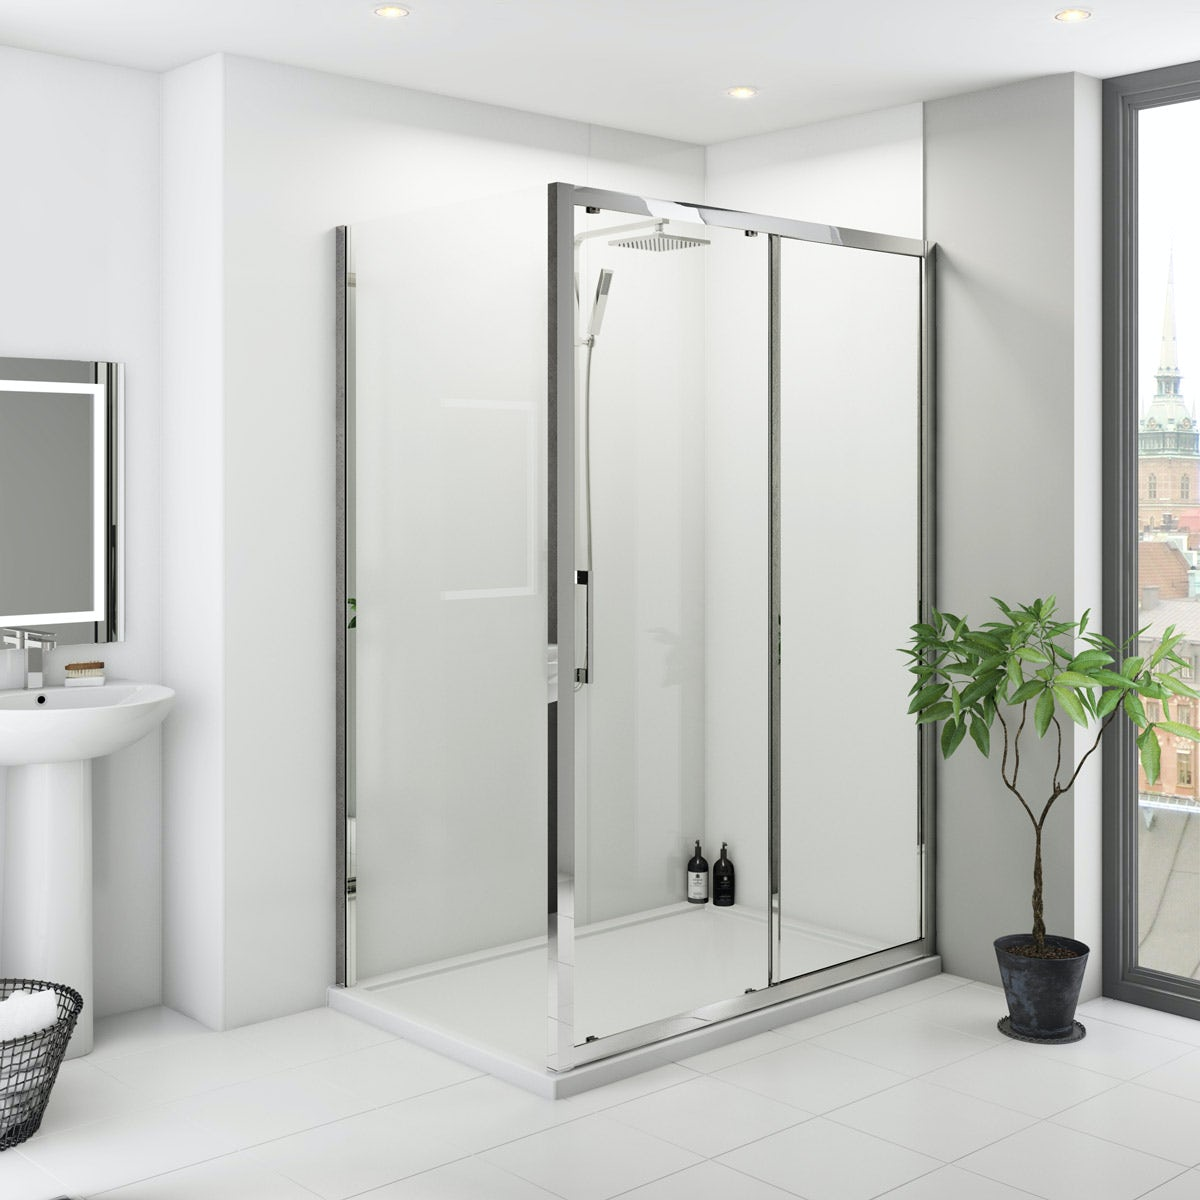 Multipanel Classic White unlipped shower wall panel 2400 x 1200